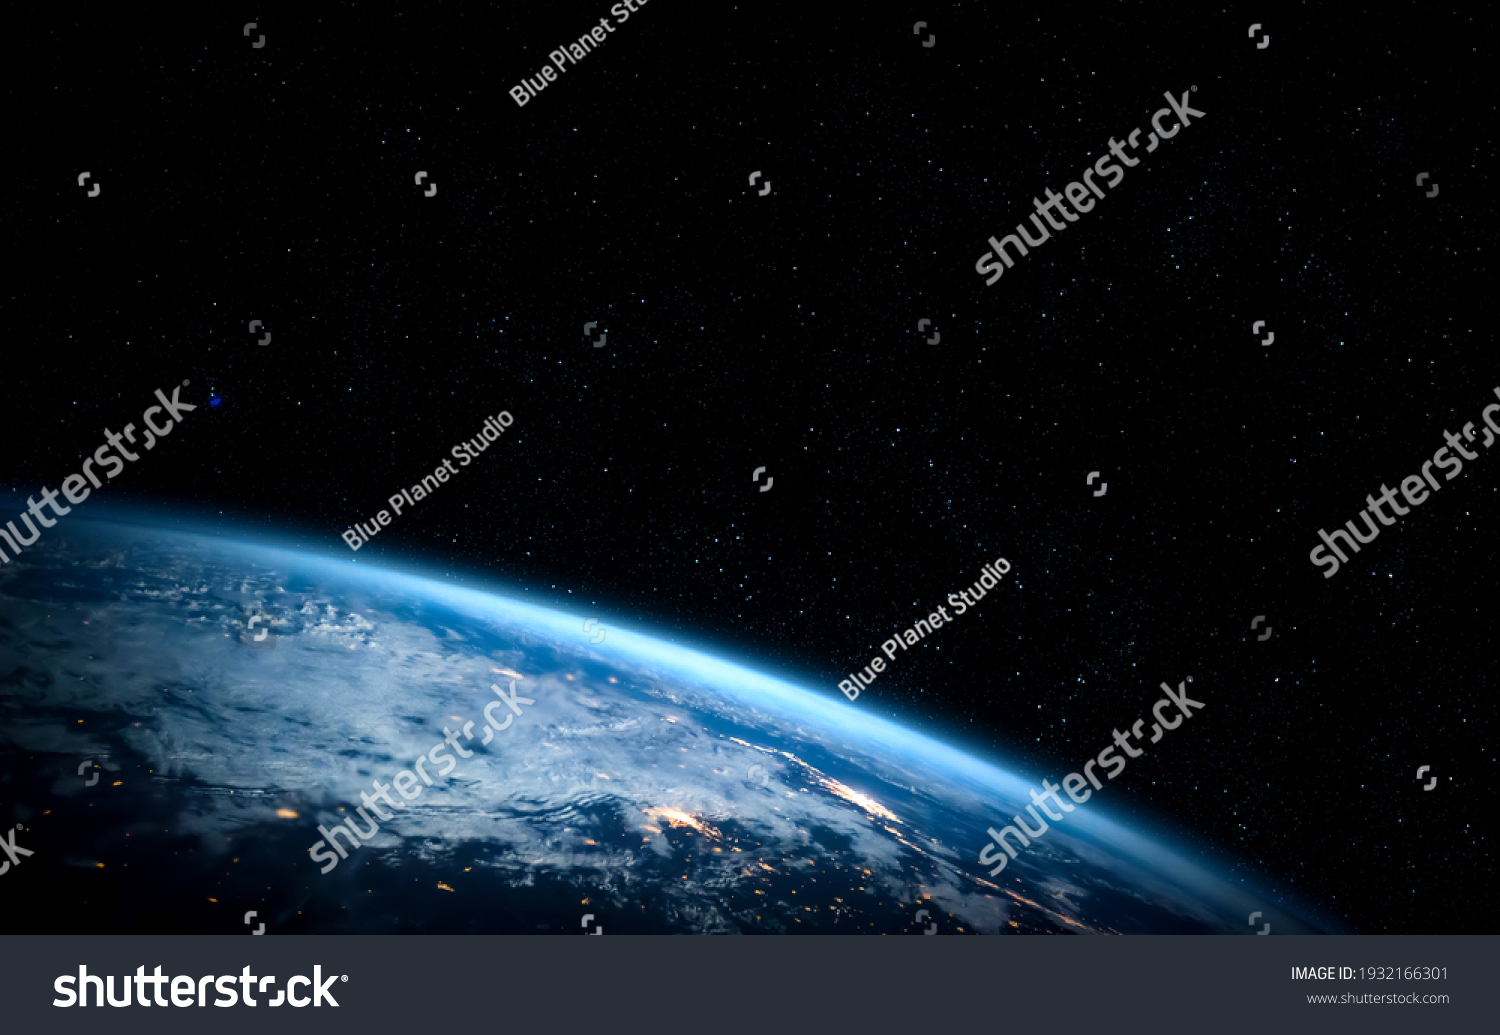 Planet earth globe view from space showing realistic earth surface and world map as in outer space point of view . Elements of this image furnished by NASA planet earth from space photos. #1932166301